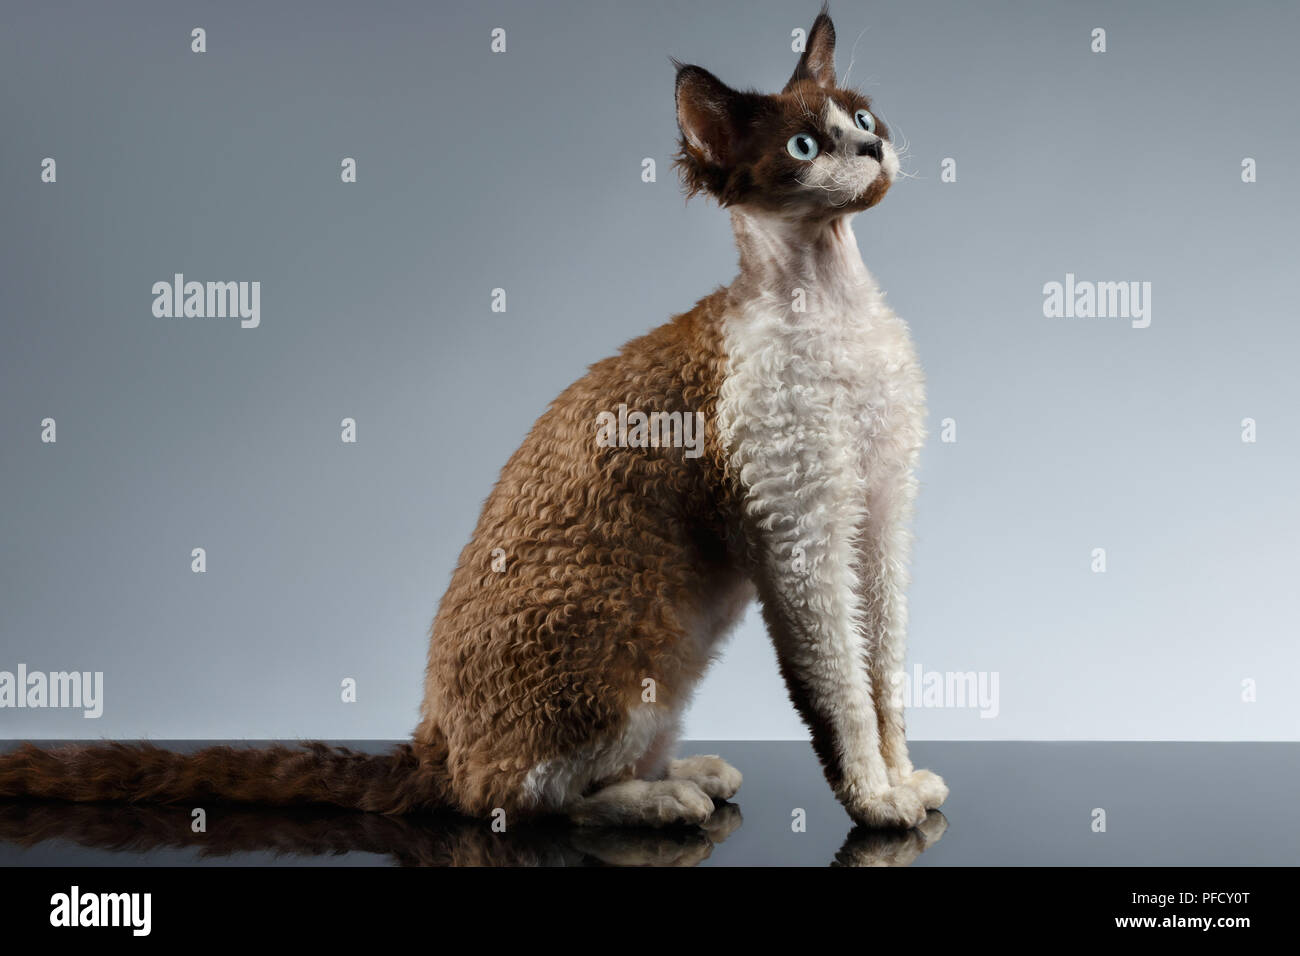 Funny Devon Rex Sits in Profile view on Gray background - Stock Image